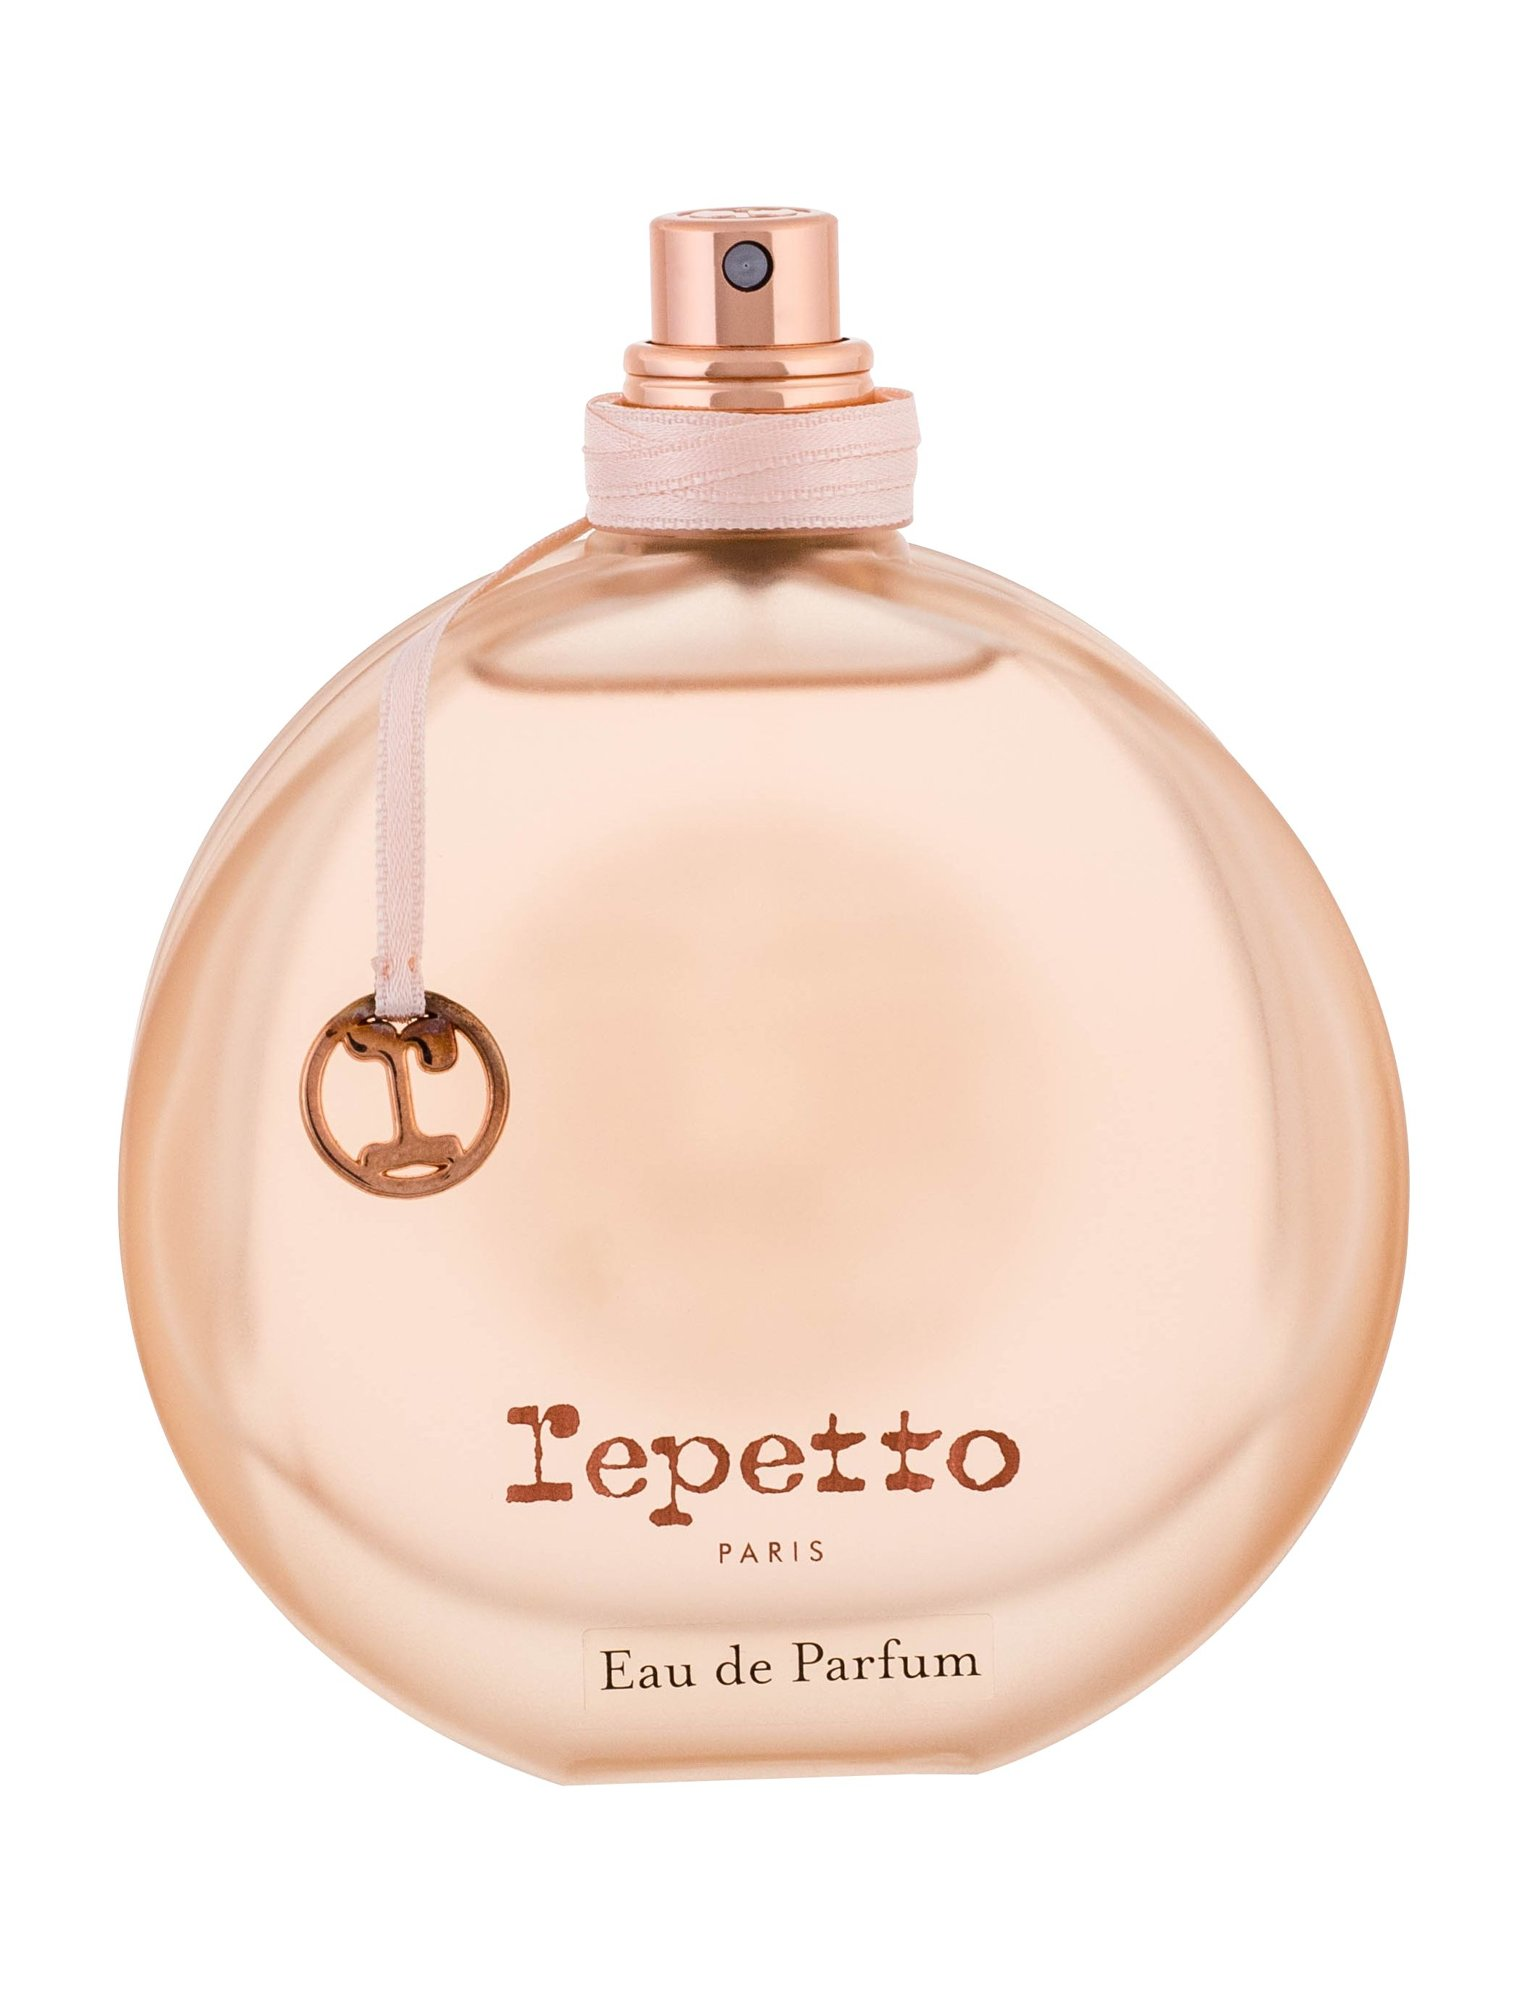 Repetto Repetto Eau de Parfum 80ml